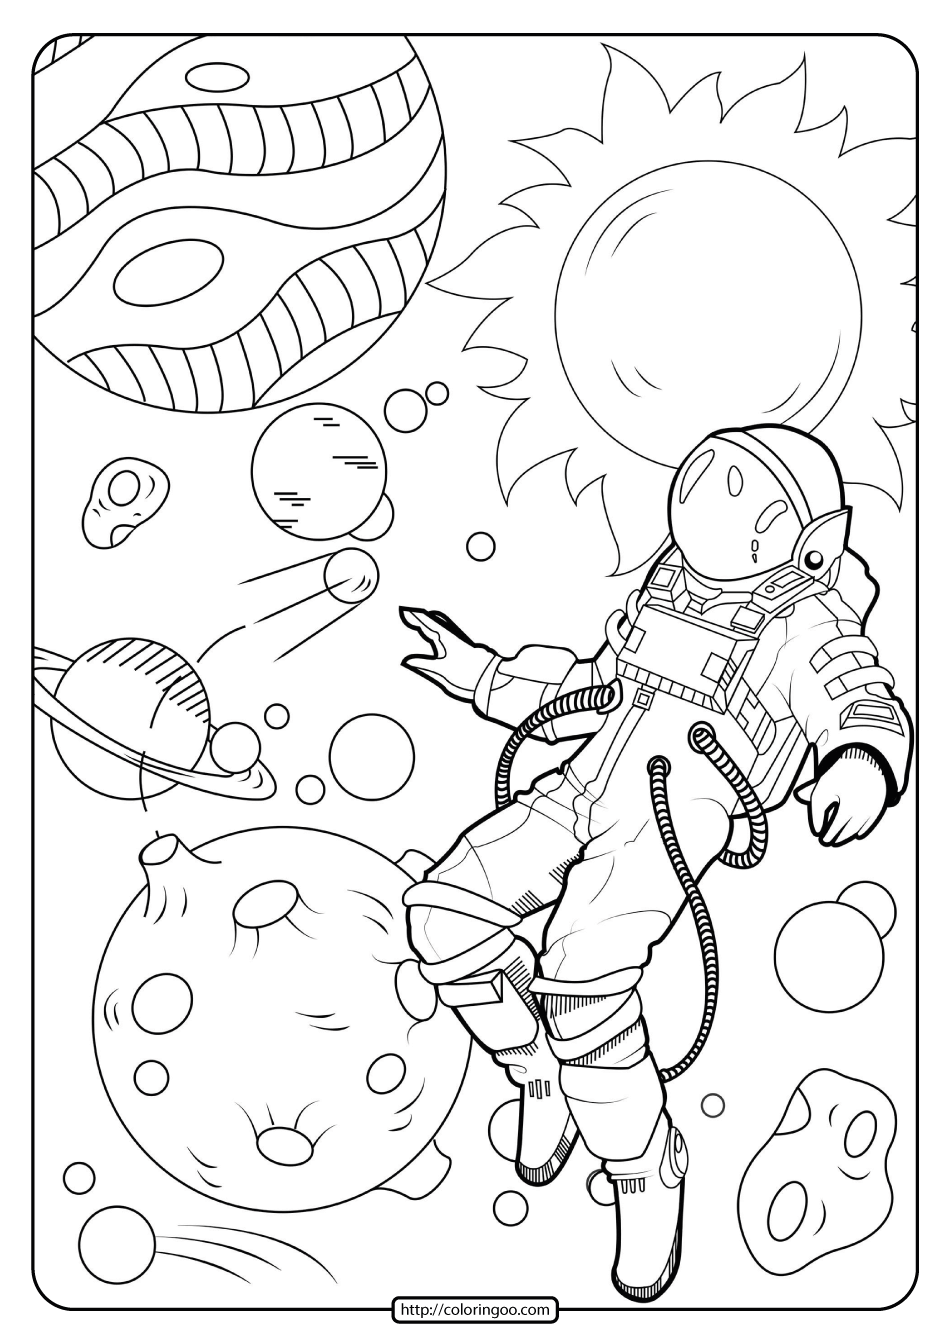 astronaut coloring for kids free printable astronaut in space pdf coloring page astronaut coloring for kids